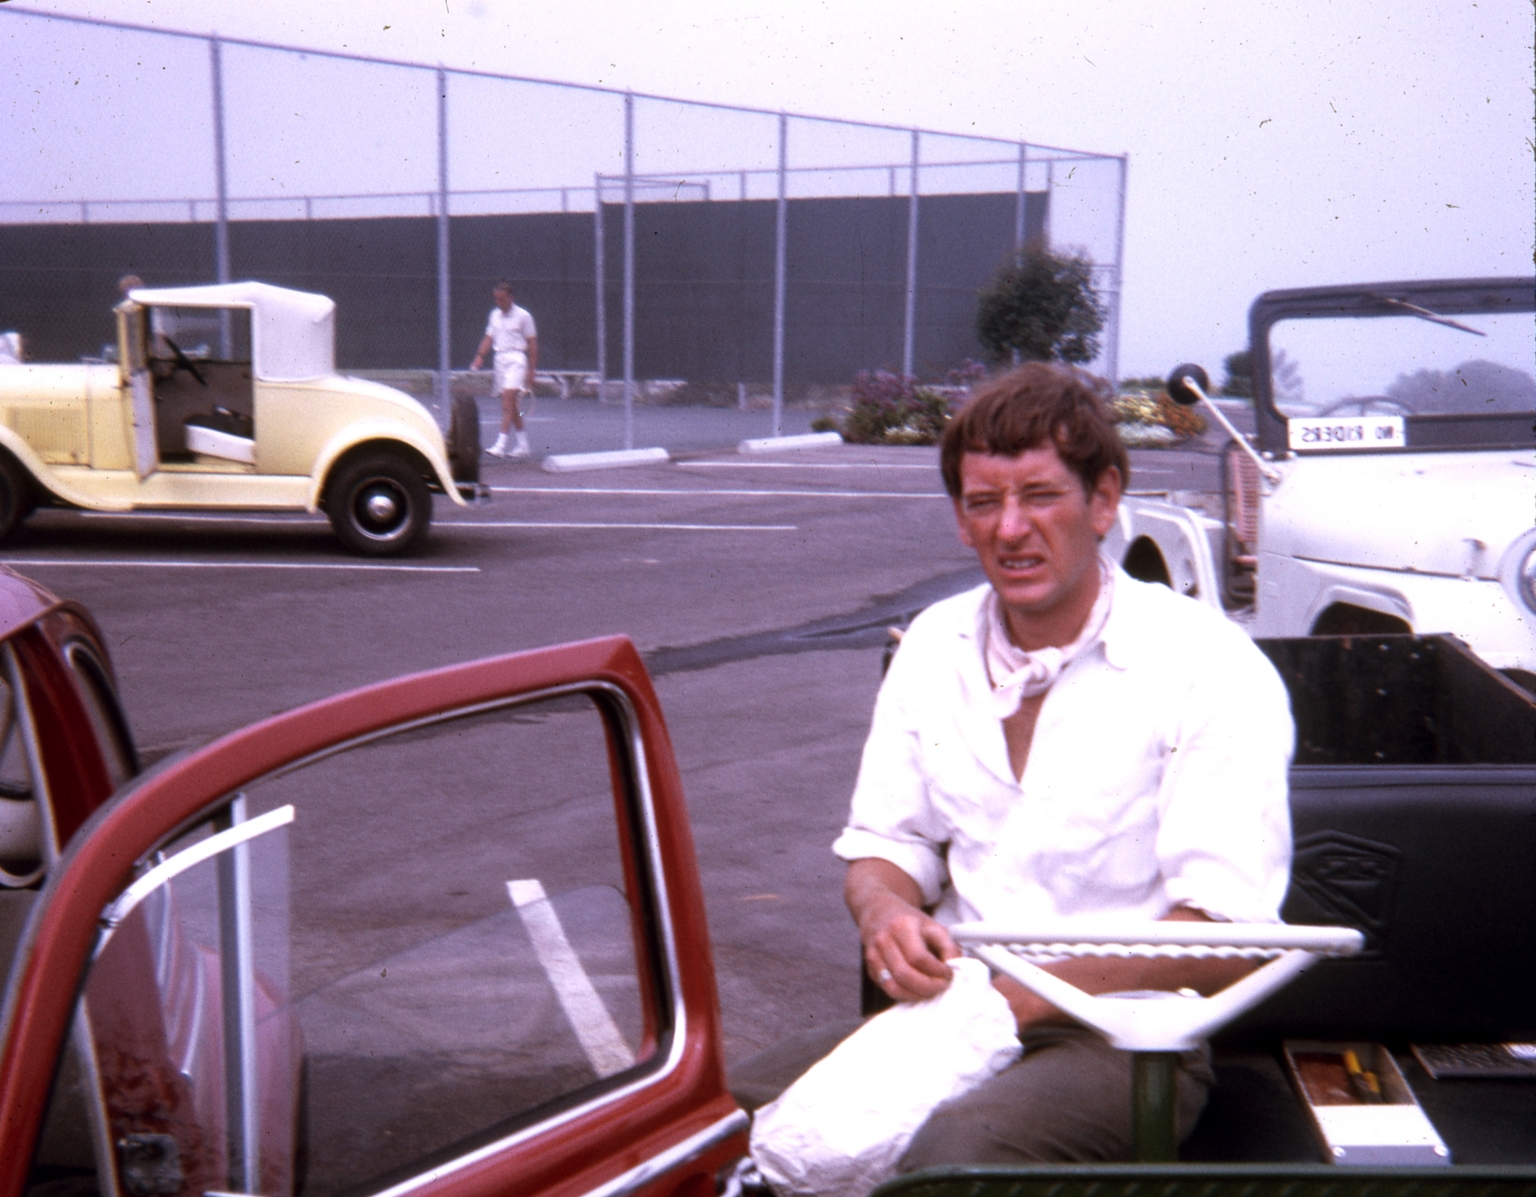 A man sitting behind the wheel of an electric cart.  The tennis court appears in the background.